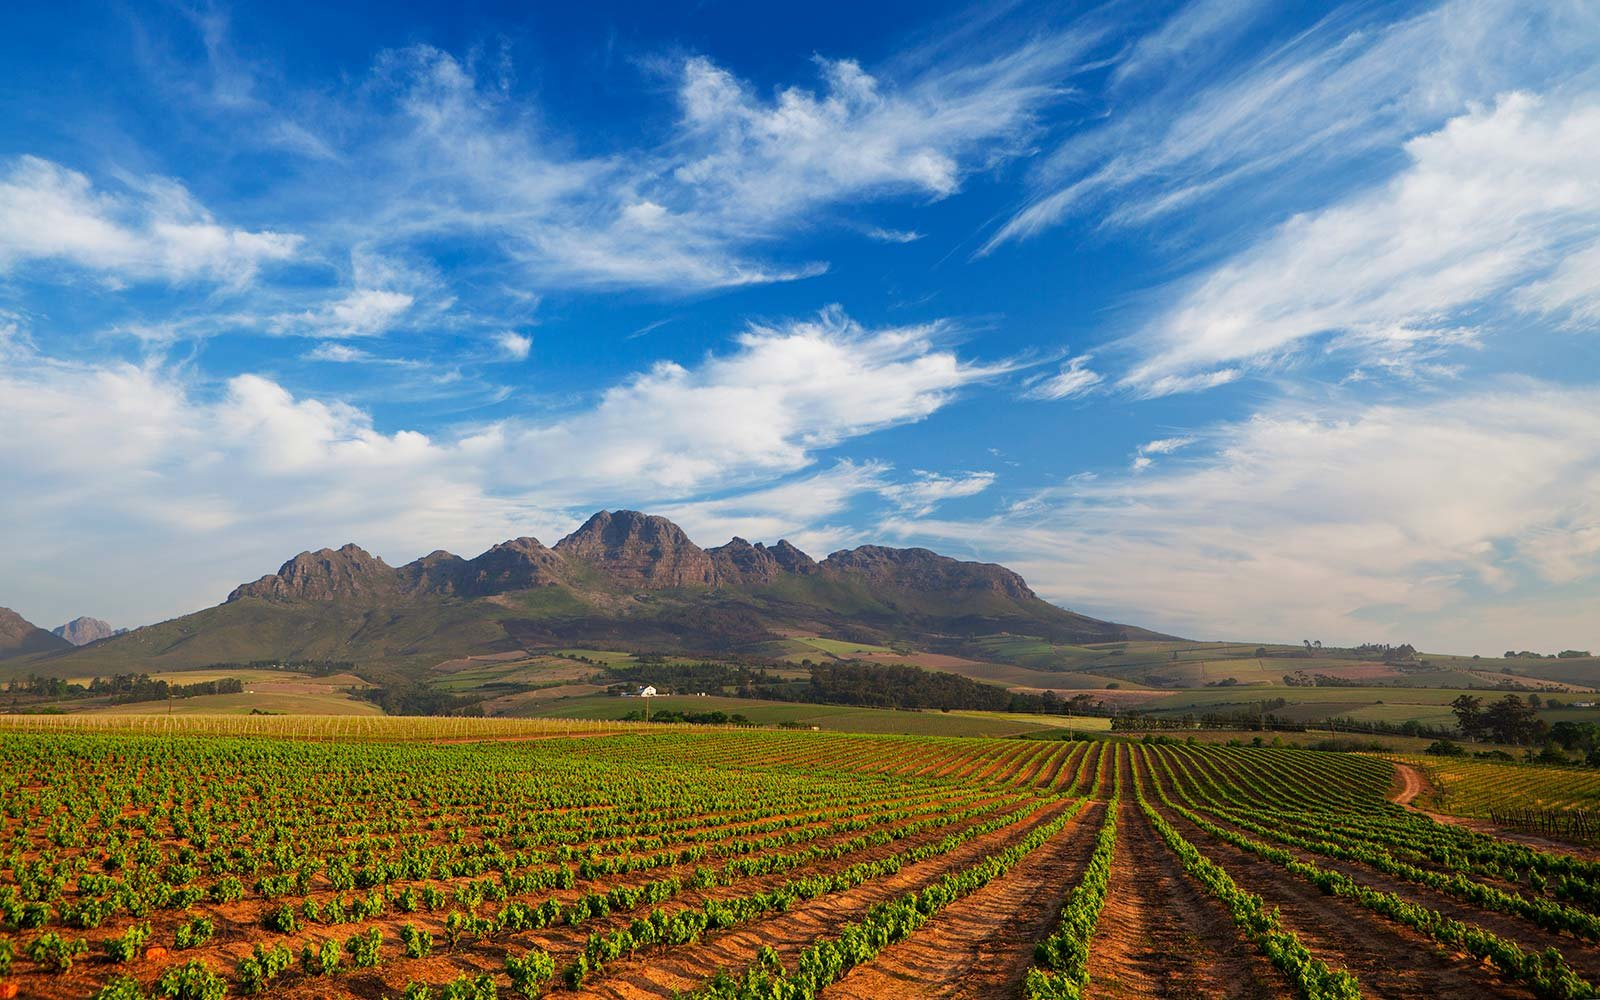 Landscape photo of vineyards in the Stellenbosch area. Stellenbosch, Western Cape, South Africa